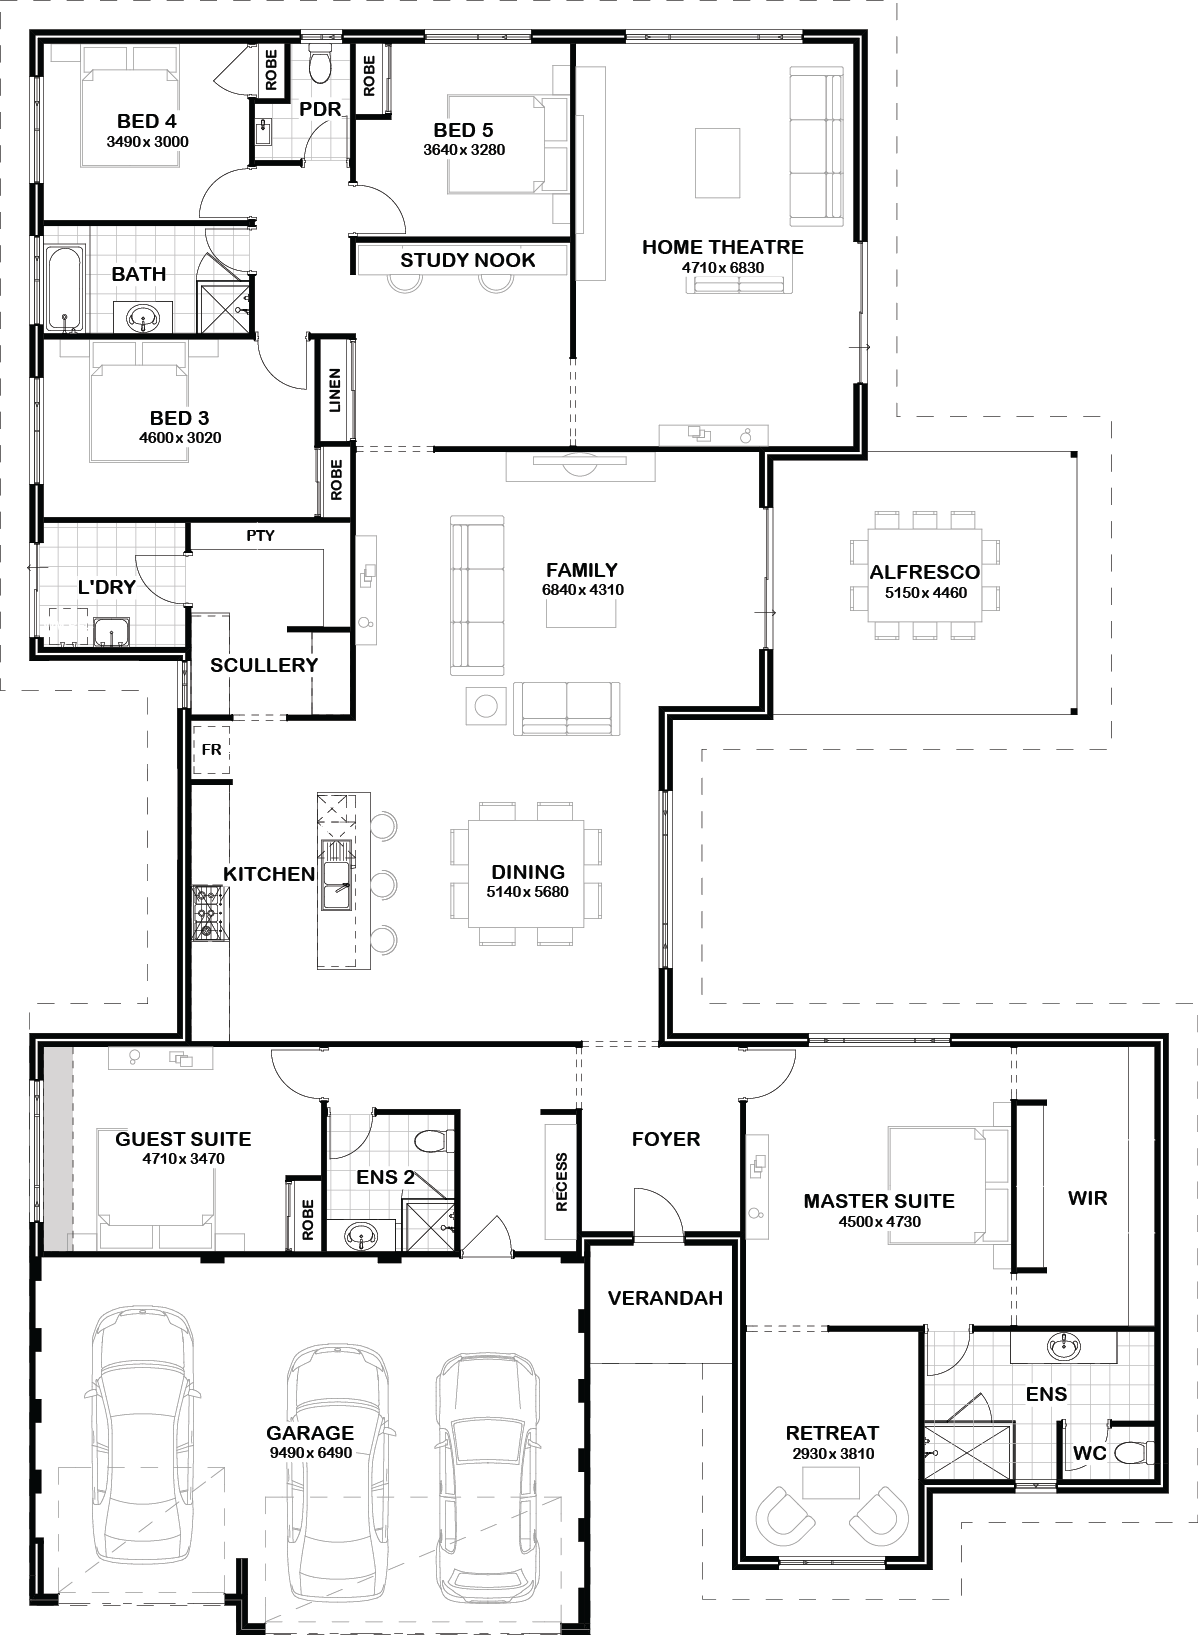 Floorplan My House Plans House Floor Plans New House Plans